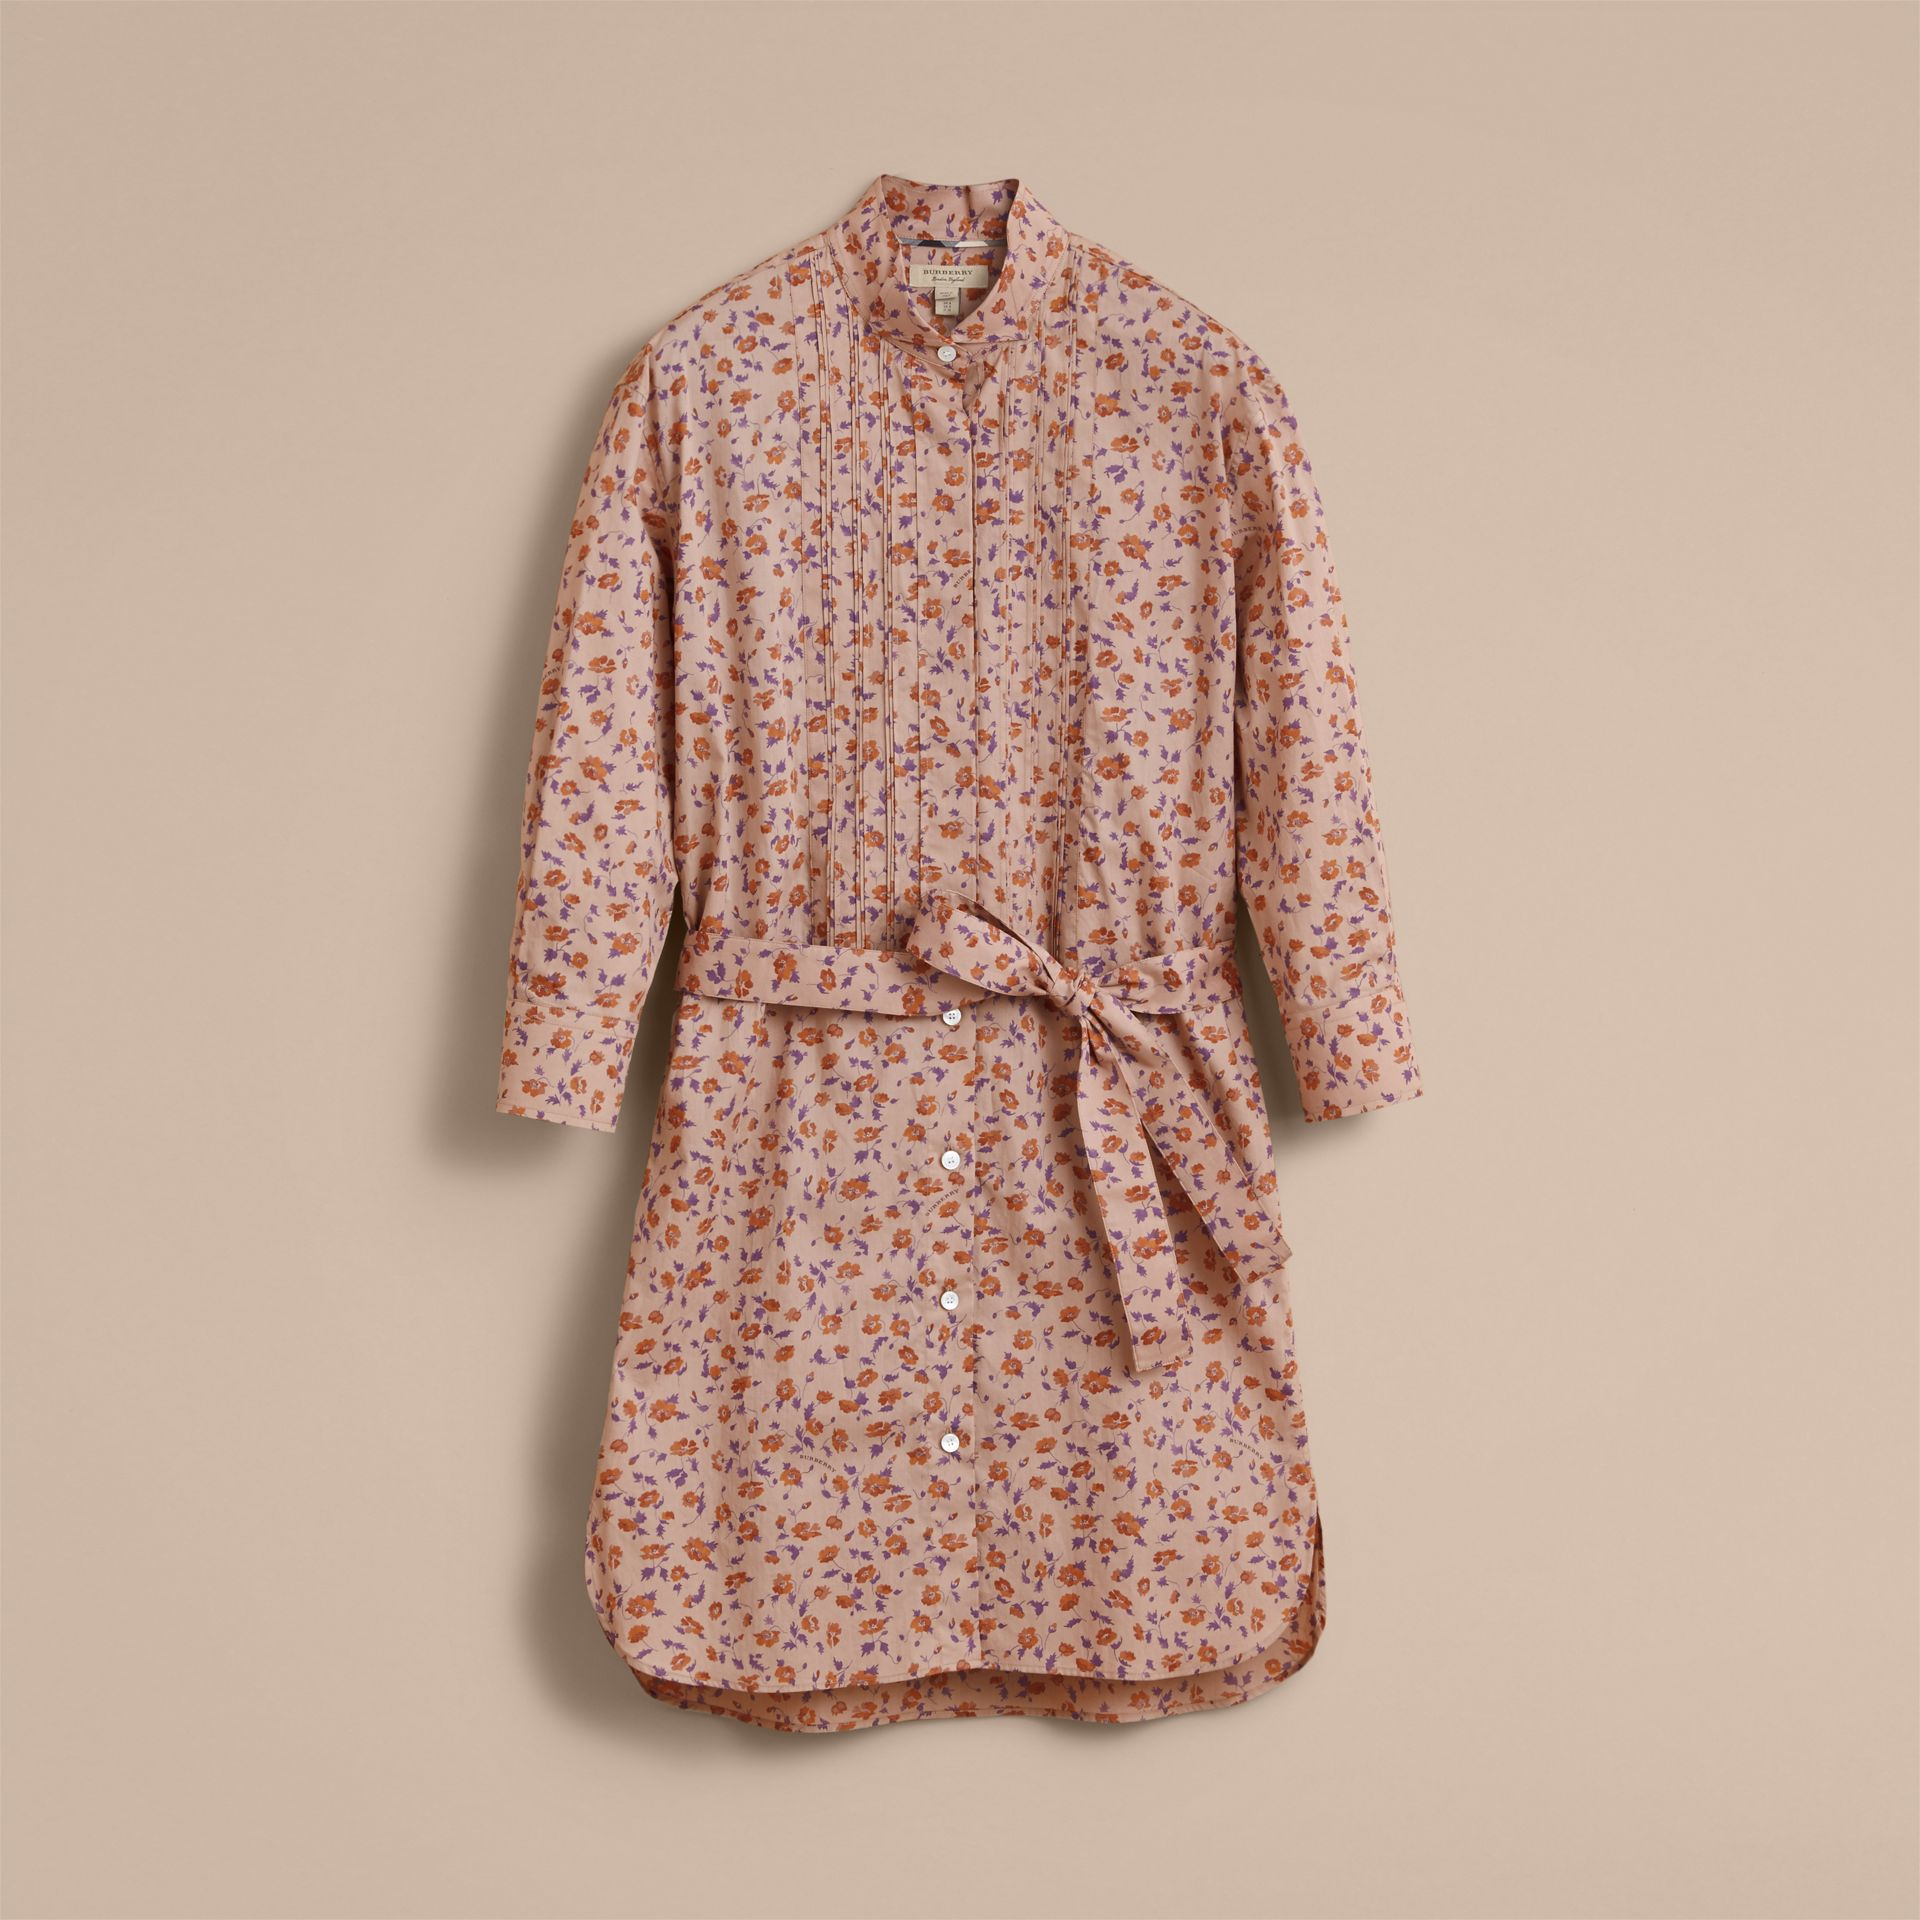 Tie-waist Floral Print Cotton Shirt Dress in Light Copper - Women | Burberry - gallery image 4